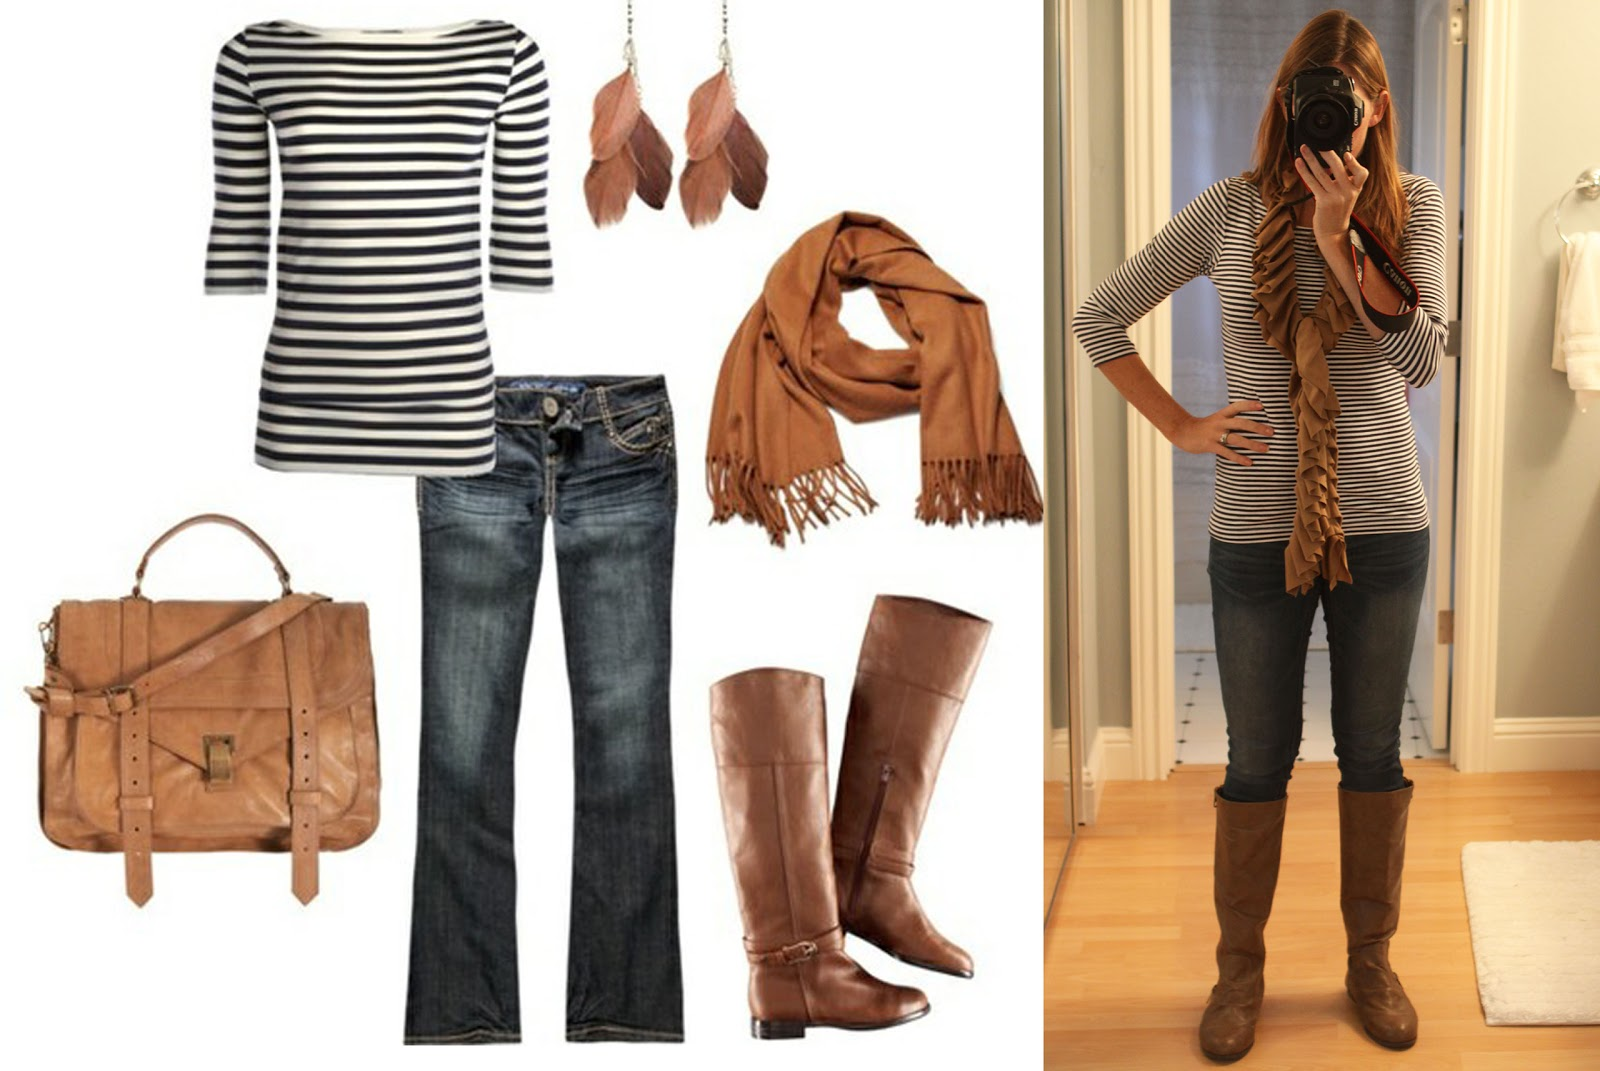 Outfit #3 – Navy & Camel? Loved it together!